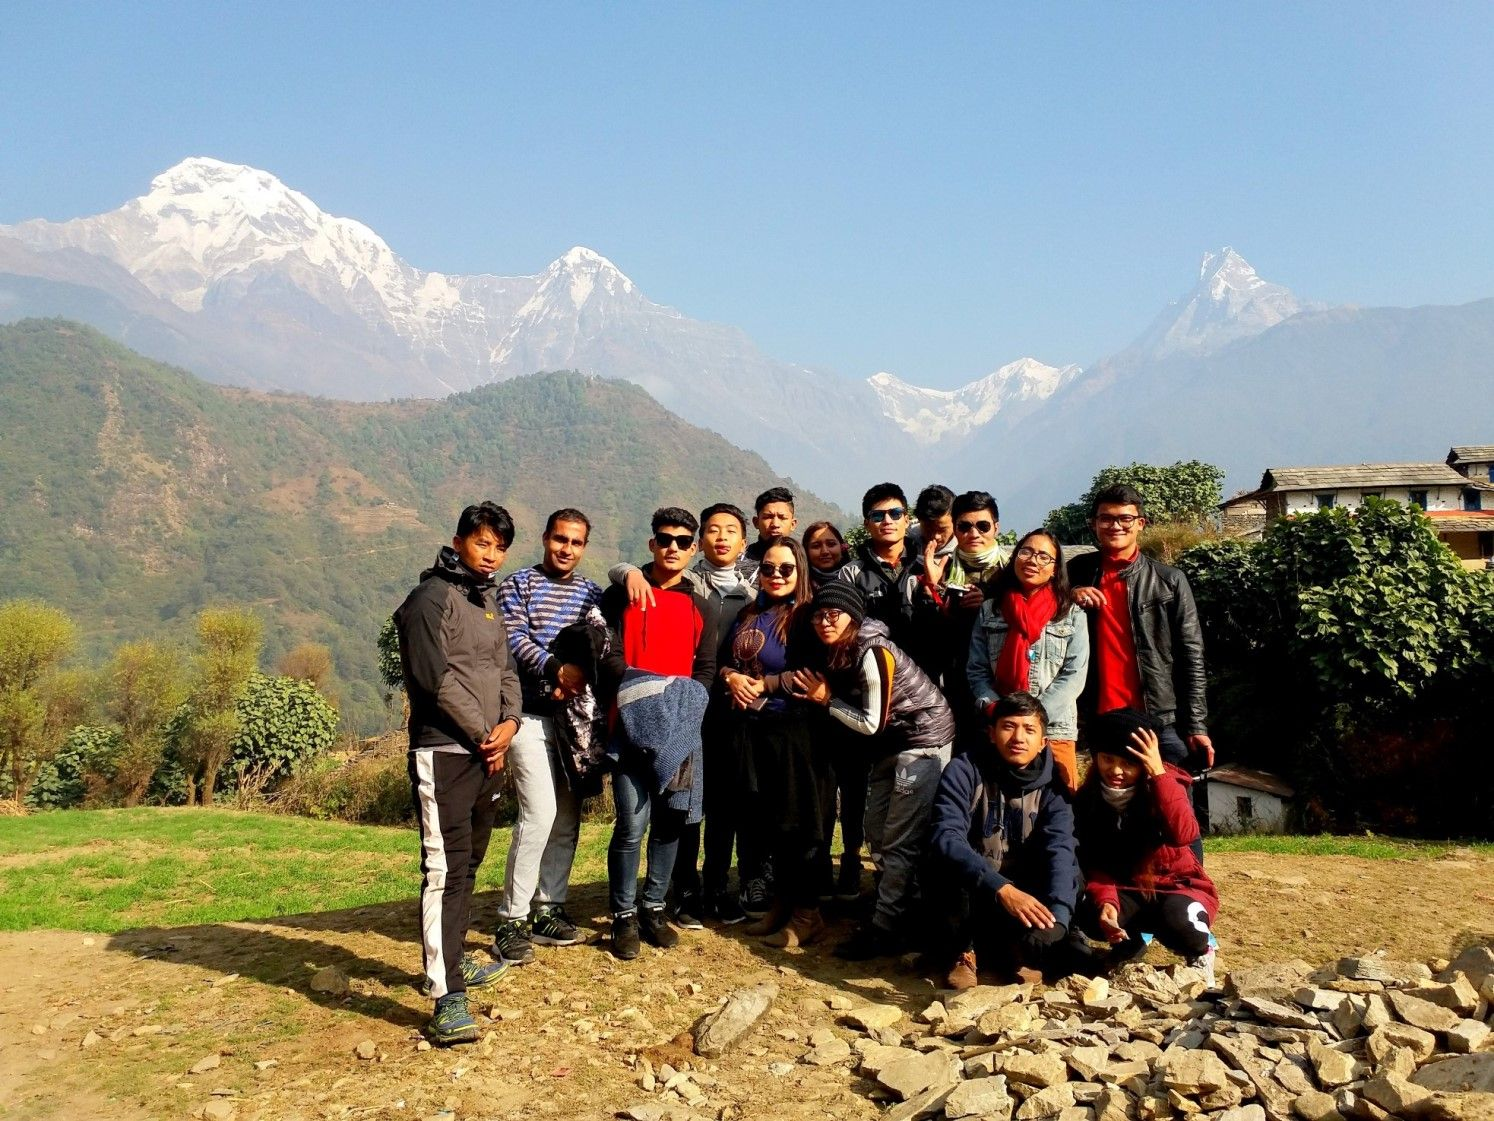 GHANDRUK MEMORIES-A village tour